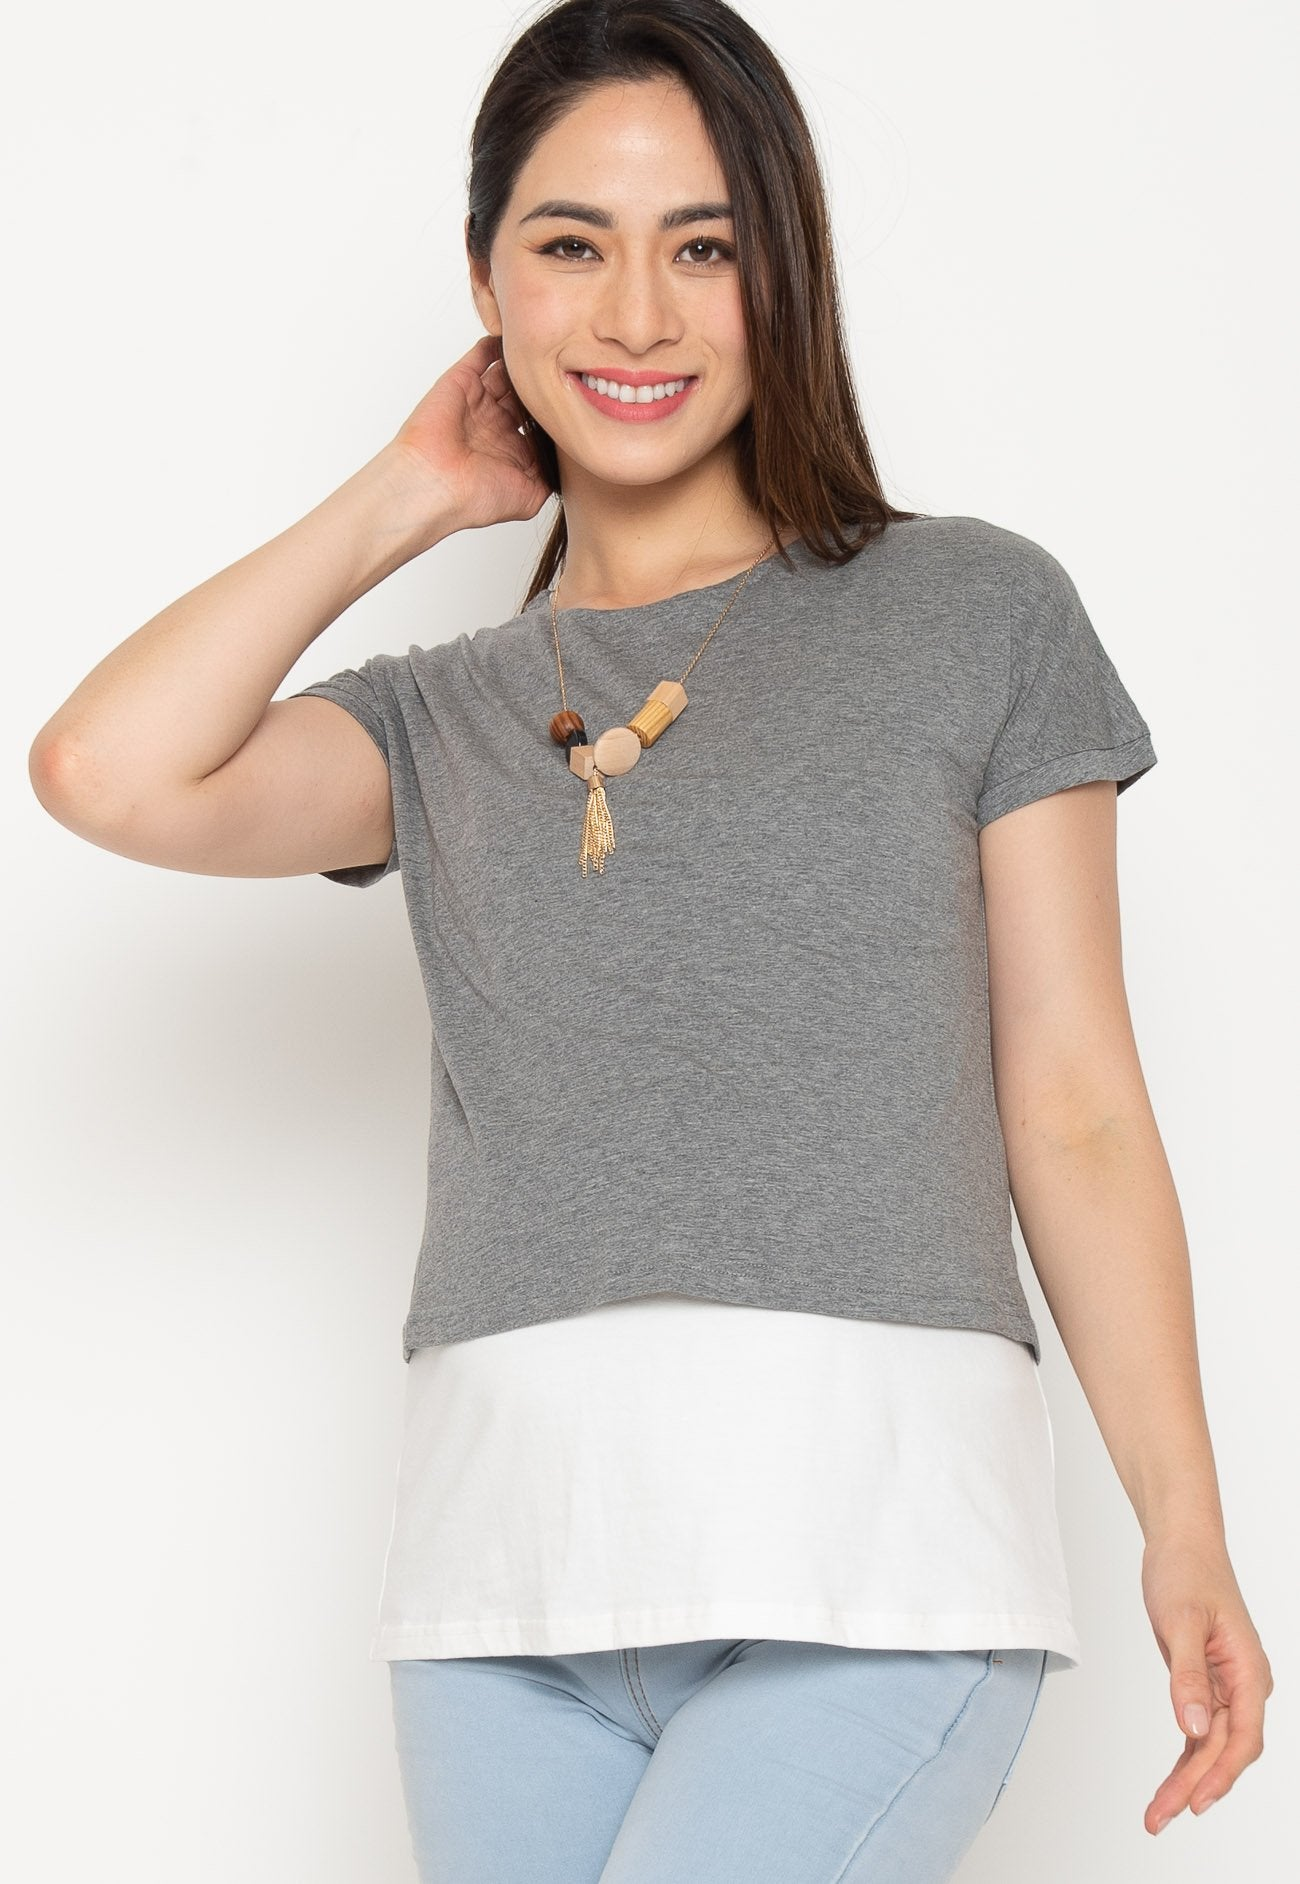 Two Tone Layered Nursing Top in Grey and White Nursing Wear Mothercot